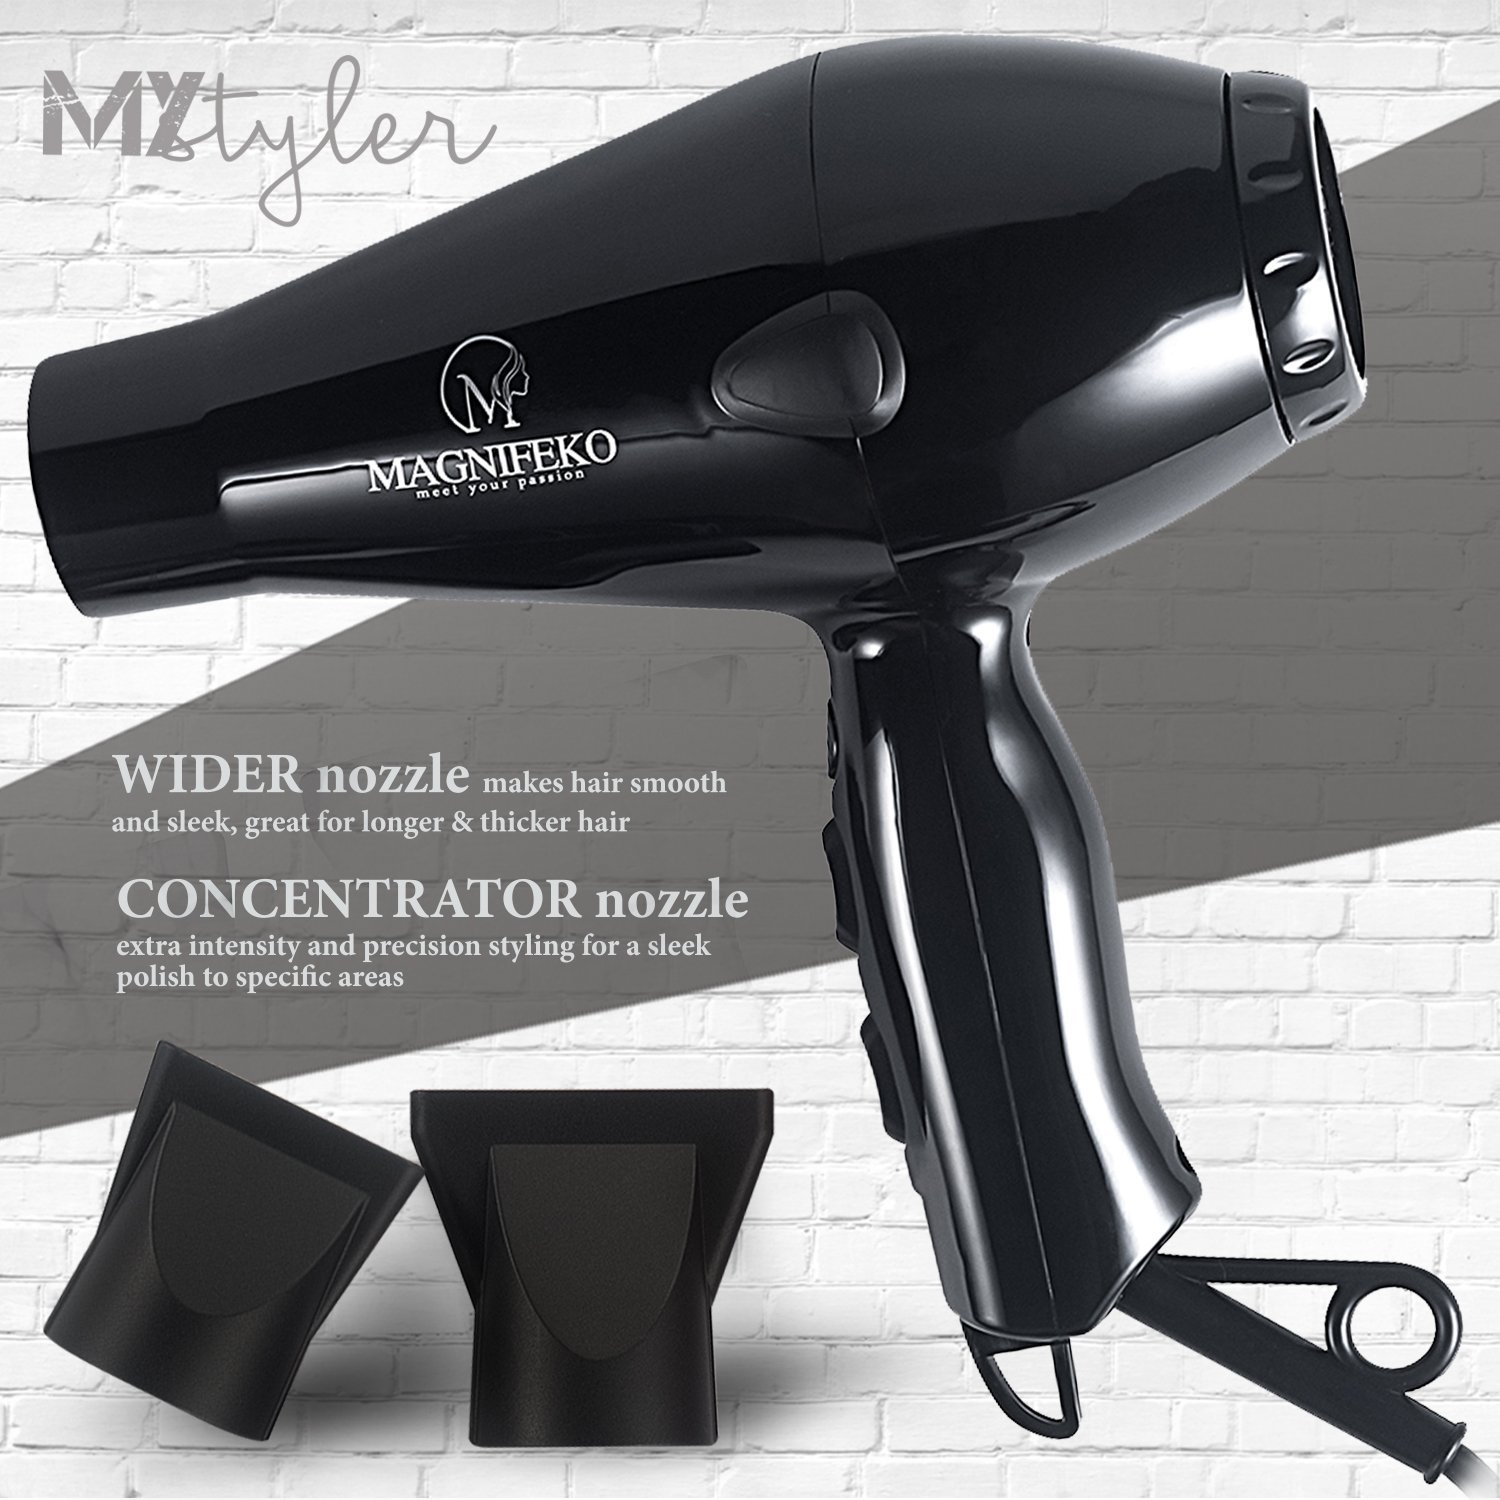 ionic hairdryer Professional Hair Dryer 1875W Blow Dryer Fast Drying for healthy and shiny, non-frizzy hair